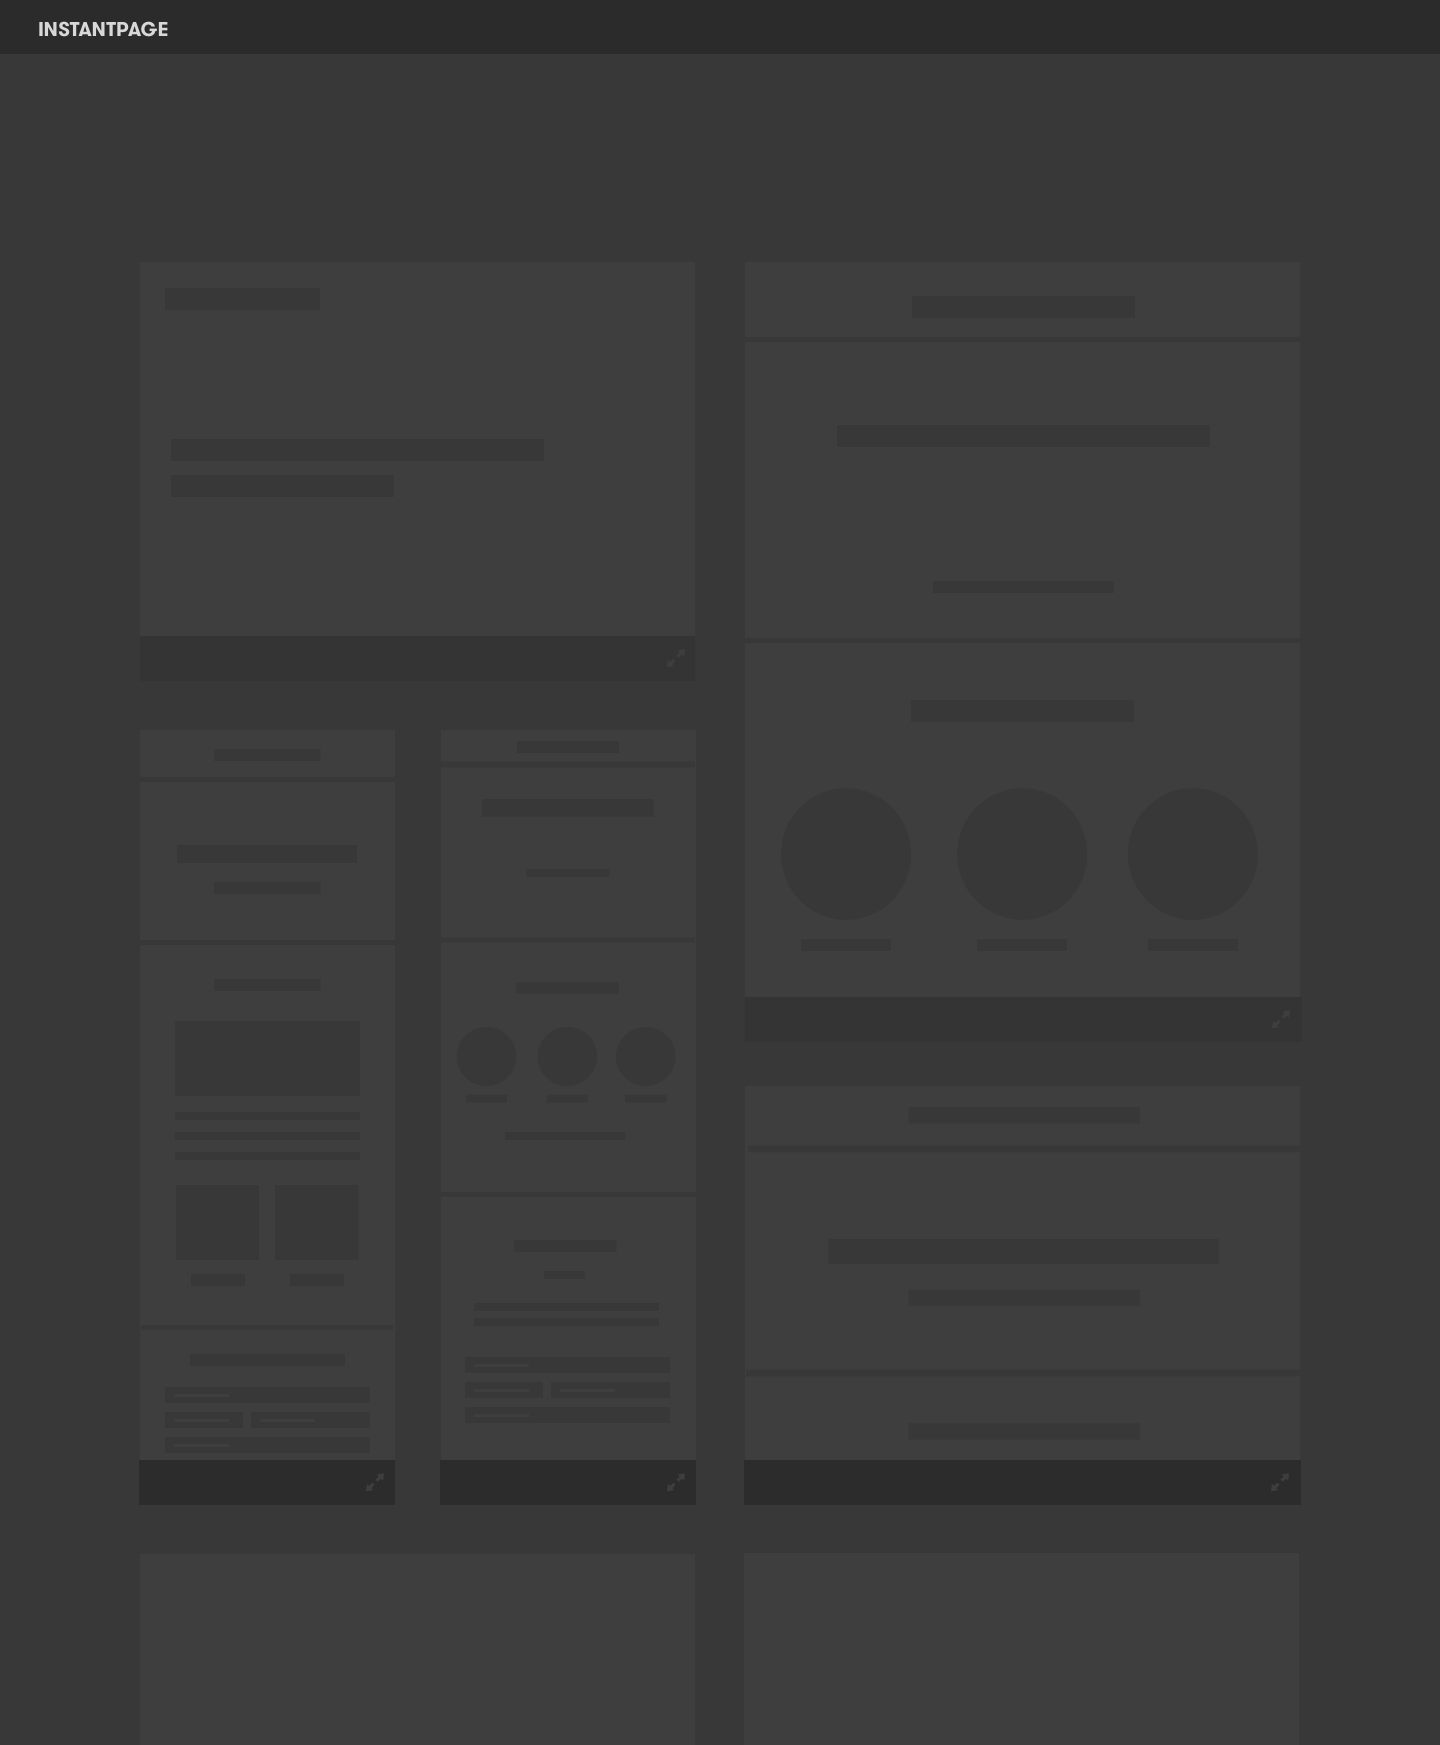 Bringing the drop off down to 7% - User testing to determine best layout for design gallery